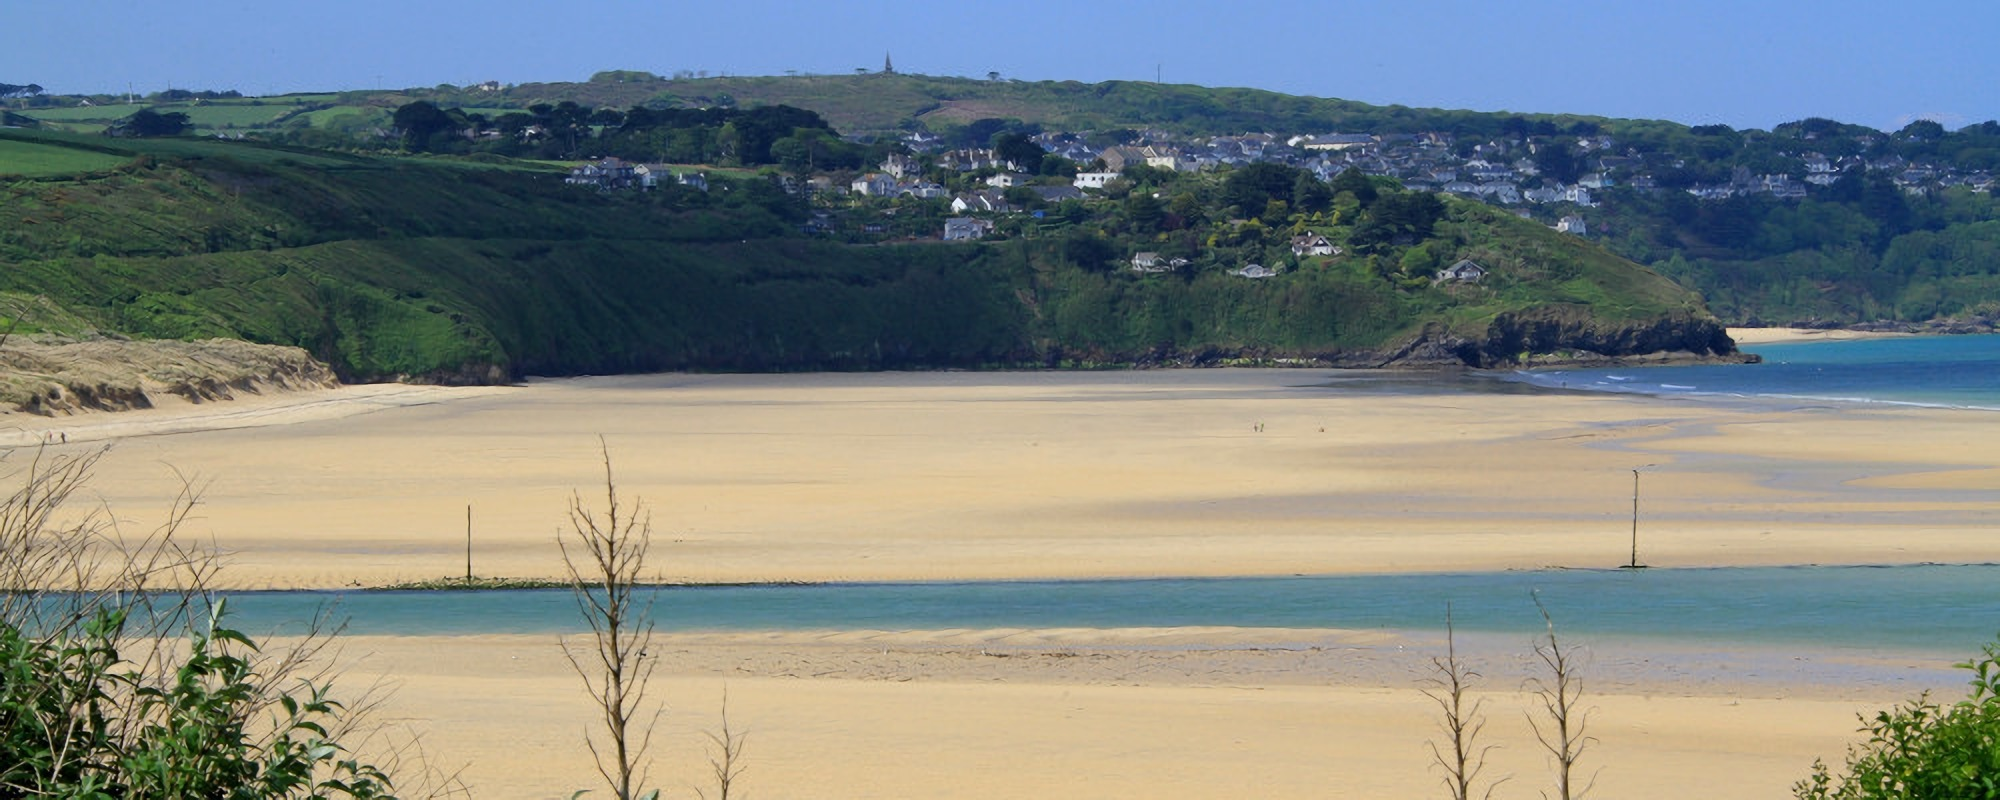 Morryp beach holiday views in hayle